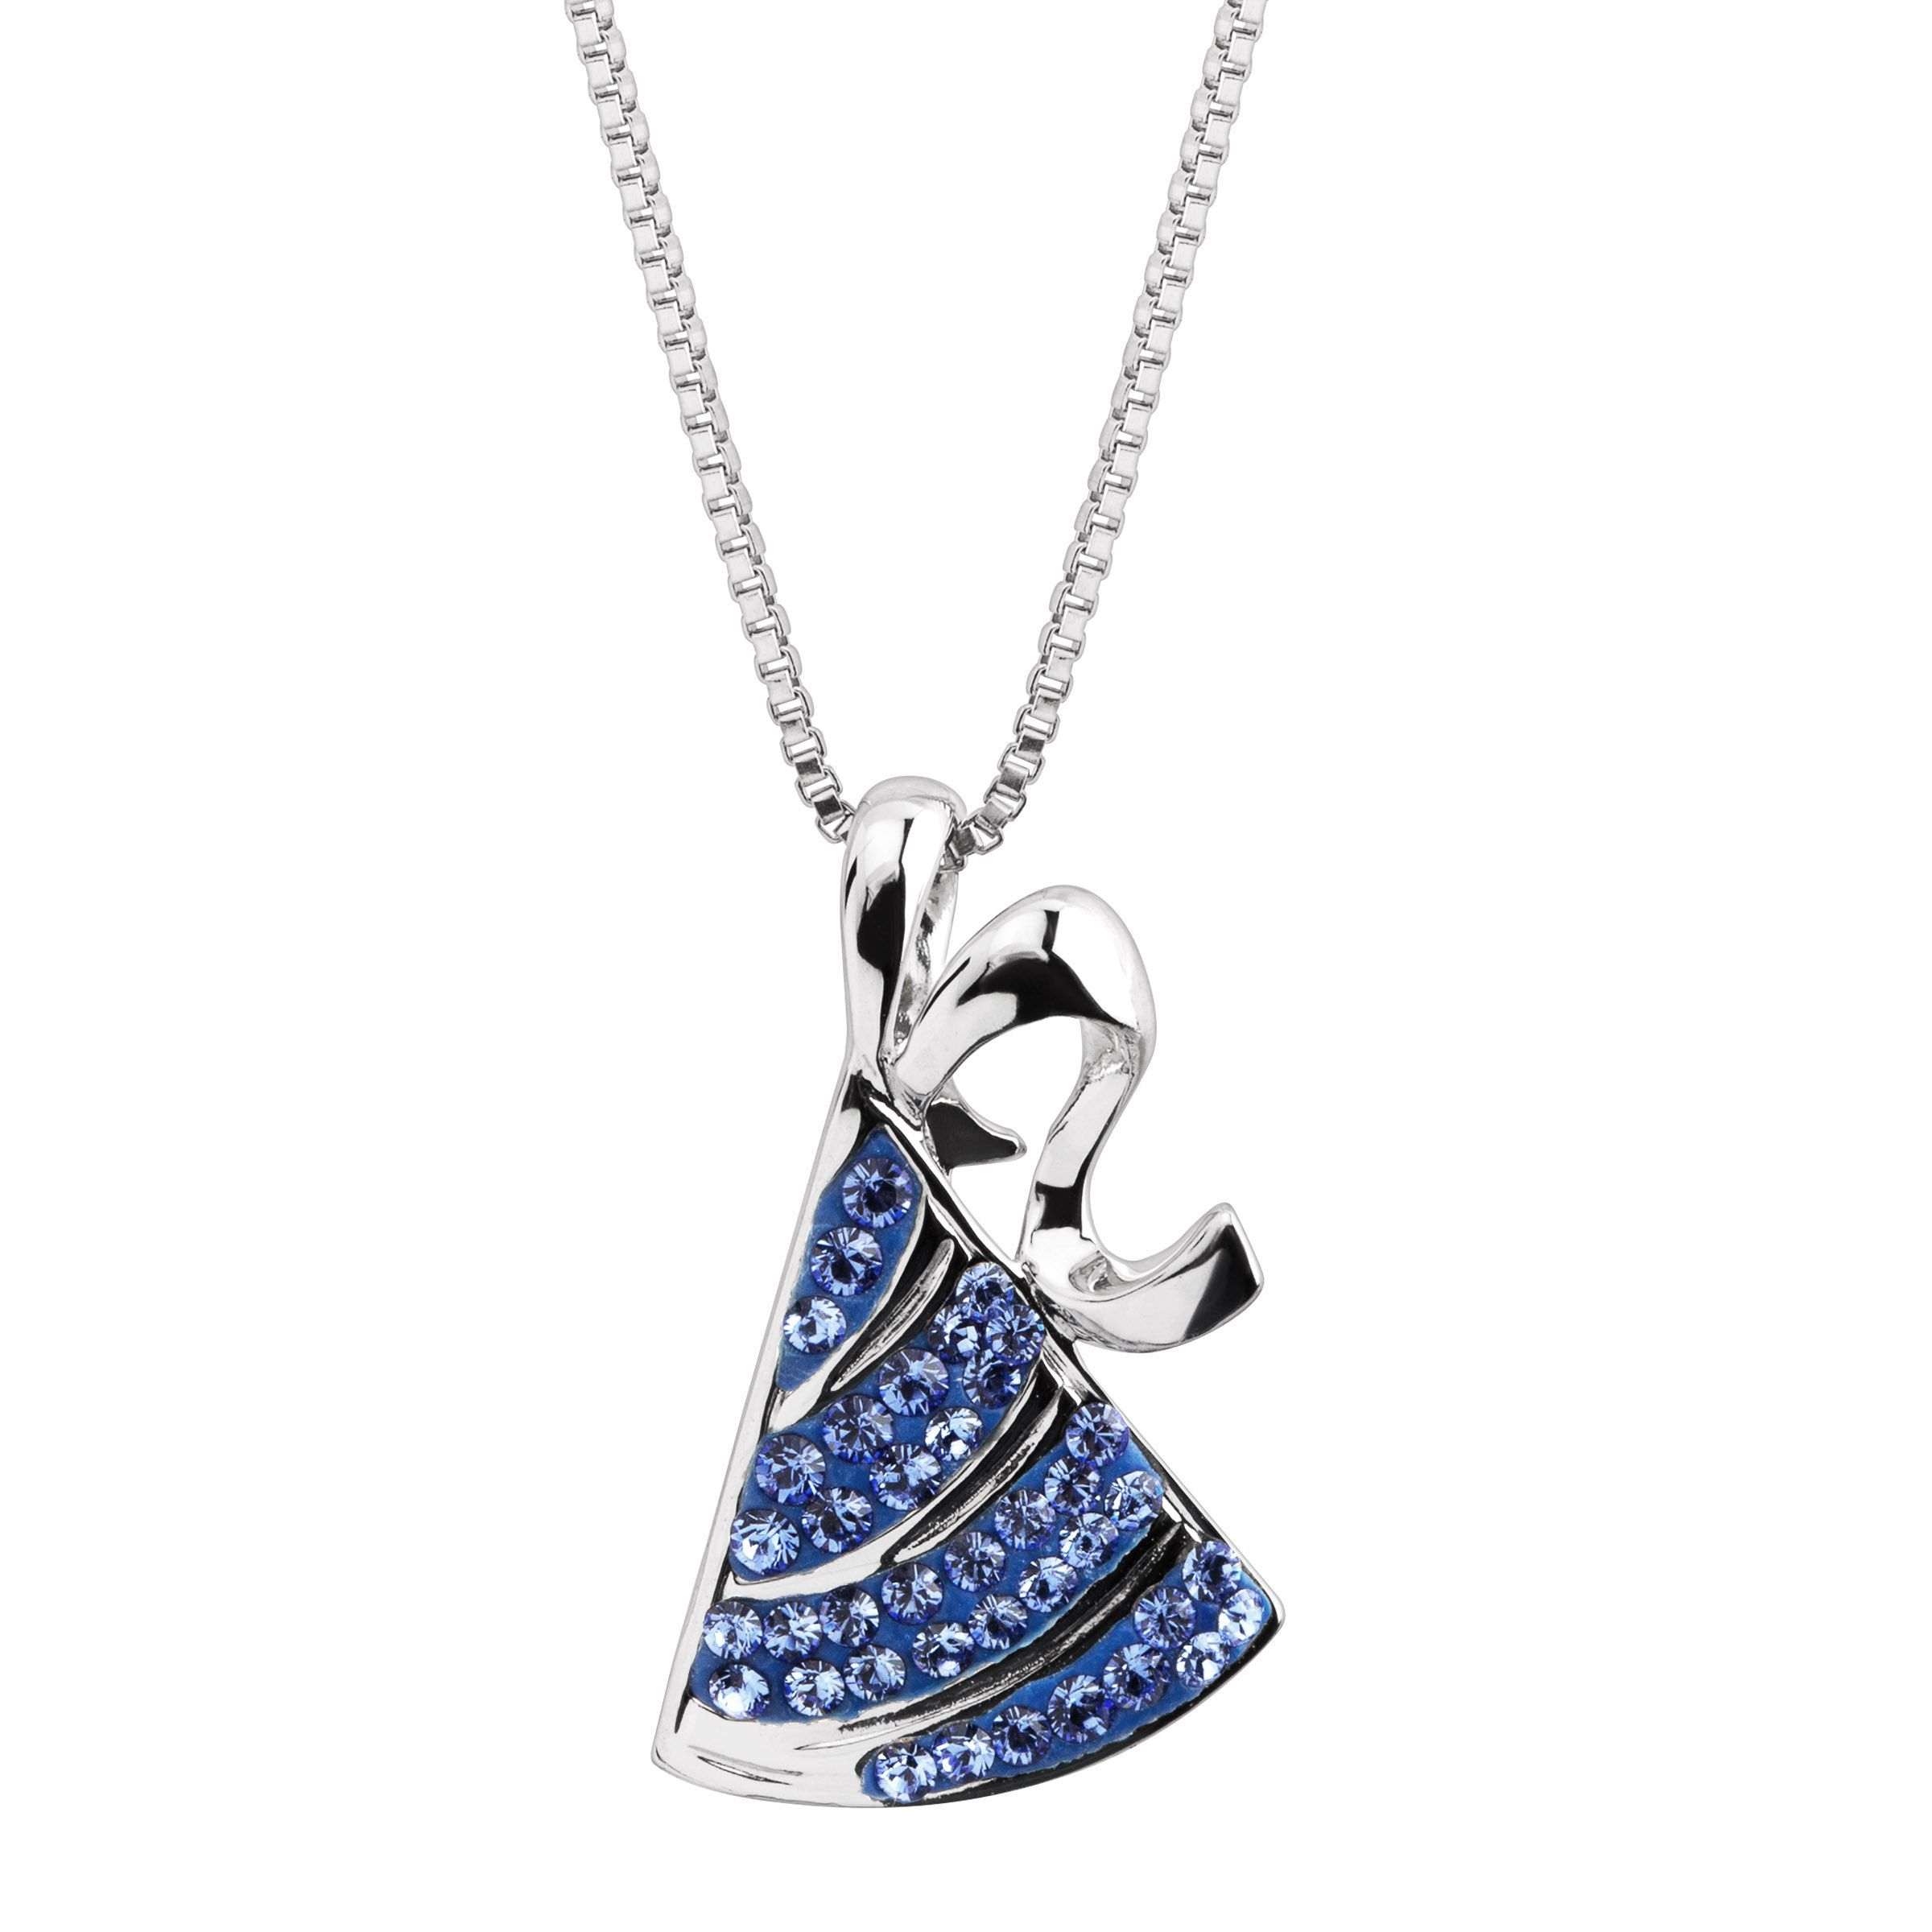 dd95584be Details about Crystaluxe Party Hat Pendant with Swarovski Crystals in  Sterling Silver